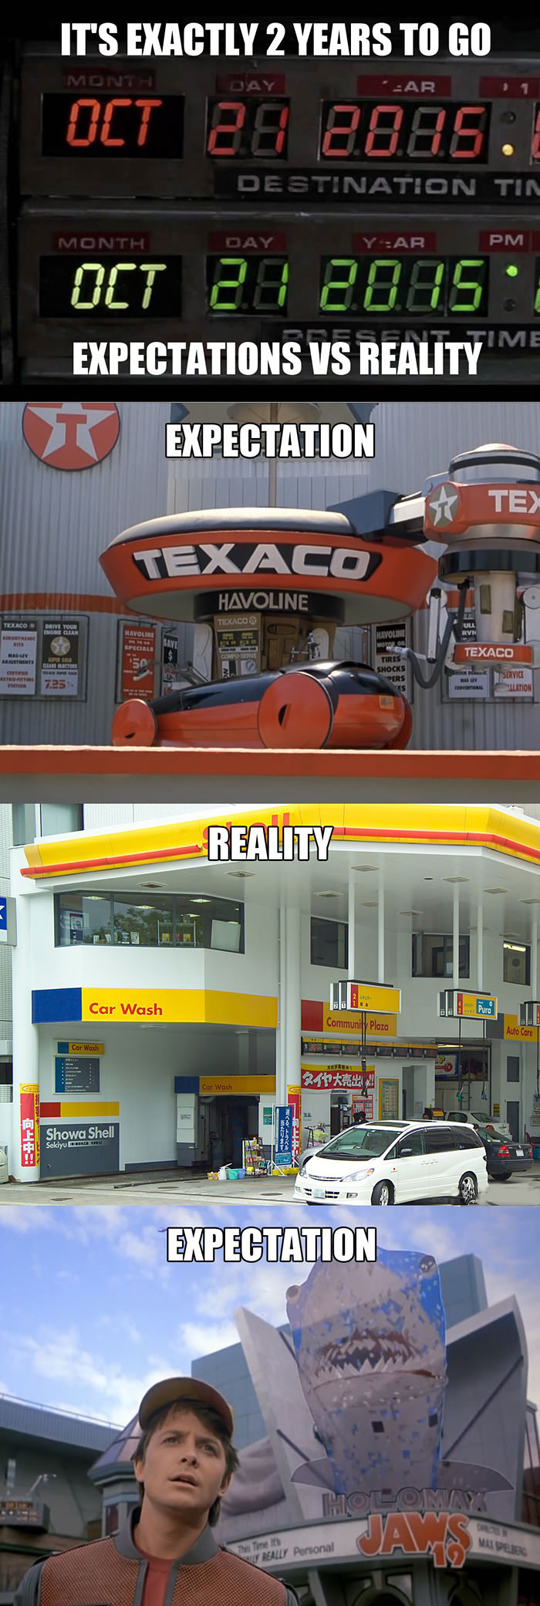 Back to the future: expectations vs. reality...